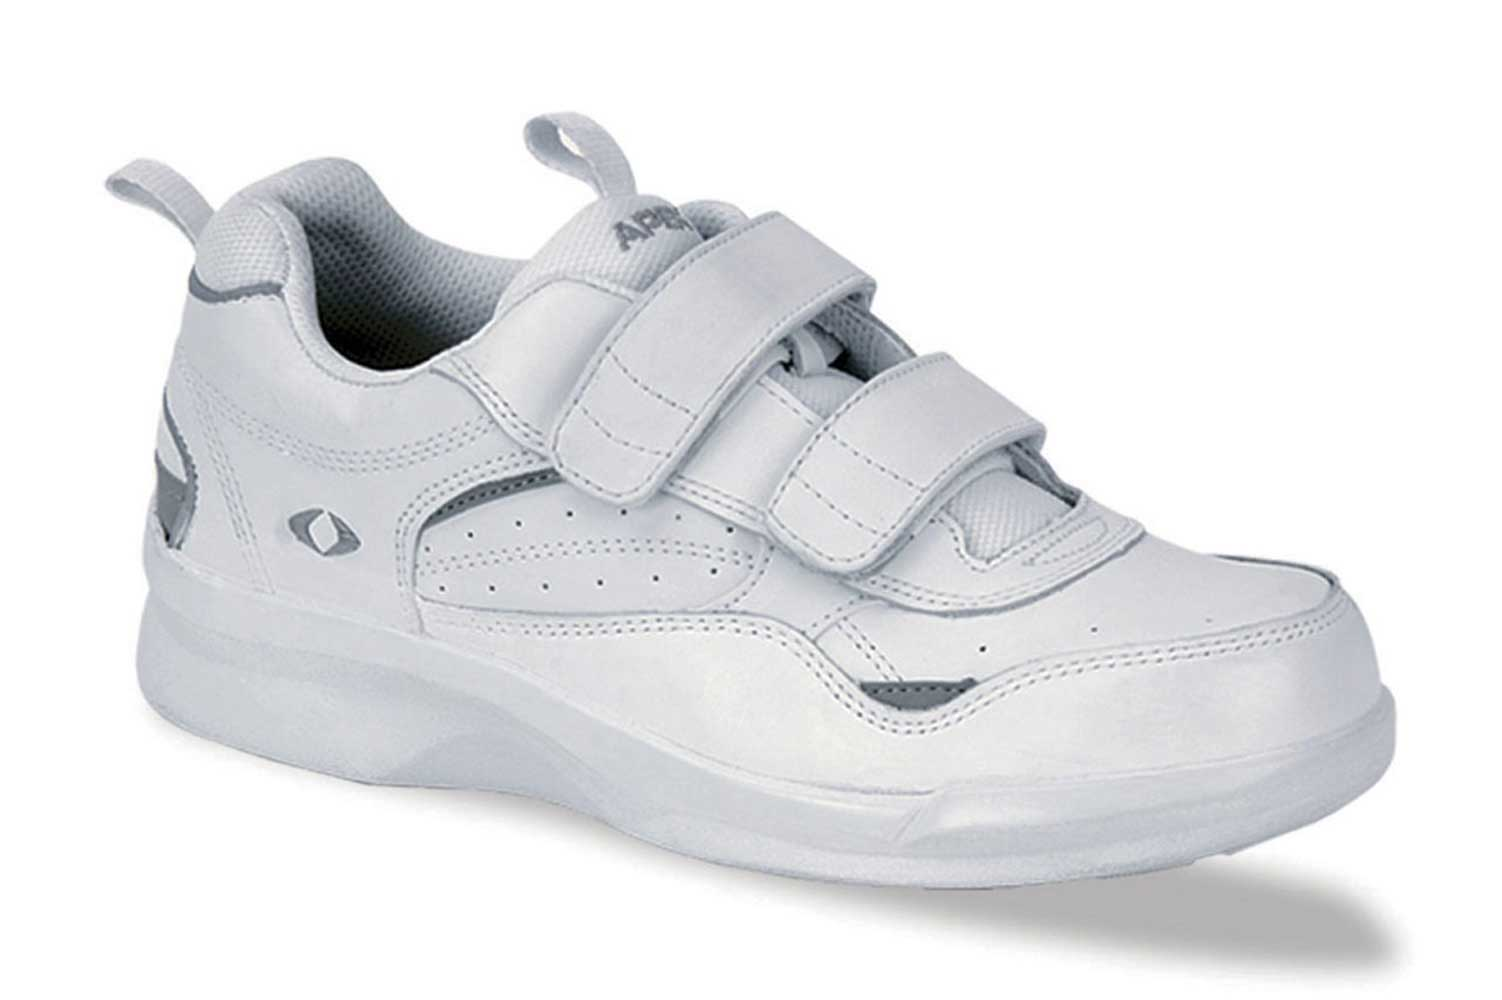 Therapeutic Shoes Reviews